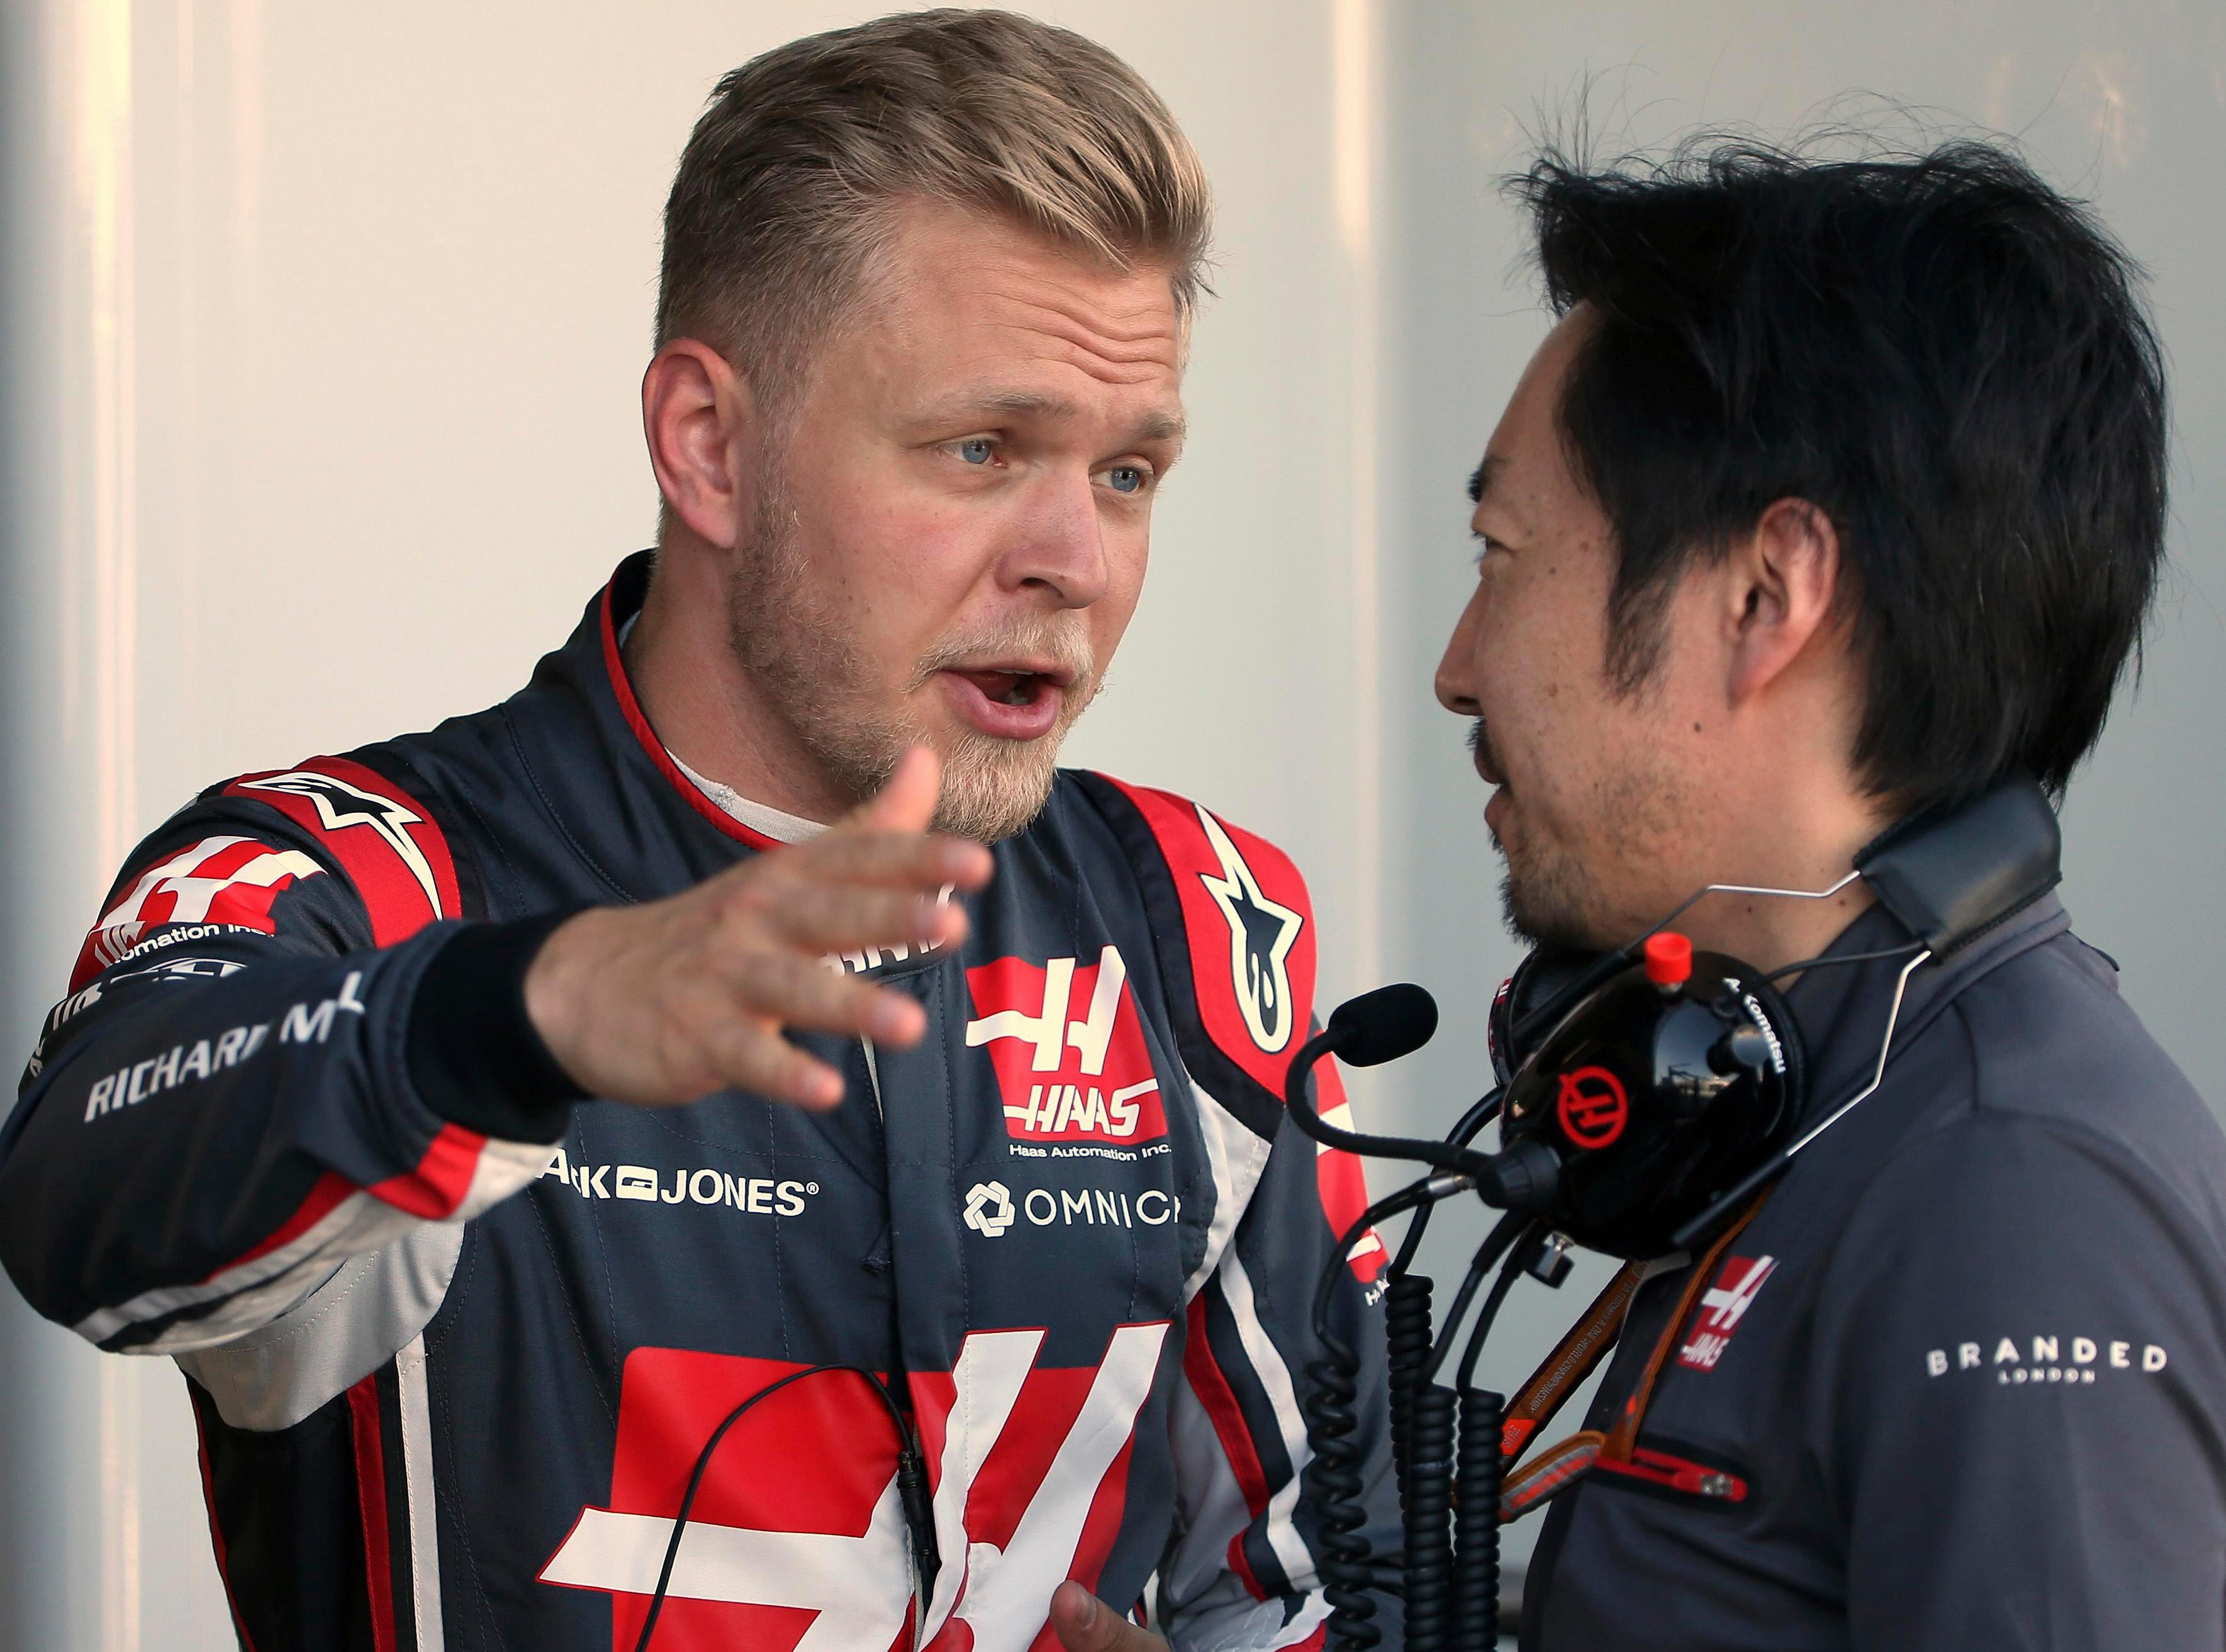 Magnussen talks to an engineer in the garage during practice for the Australian GP